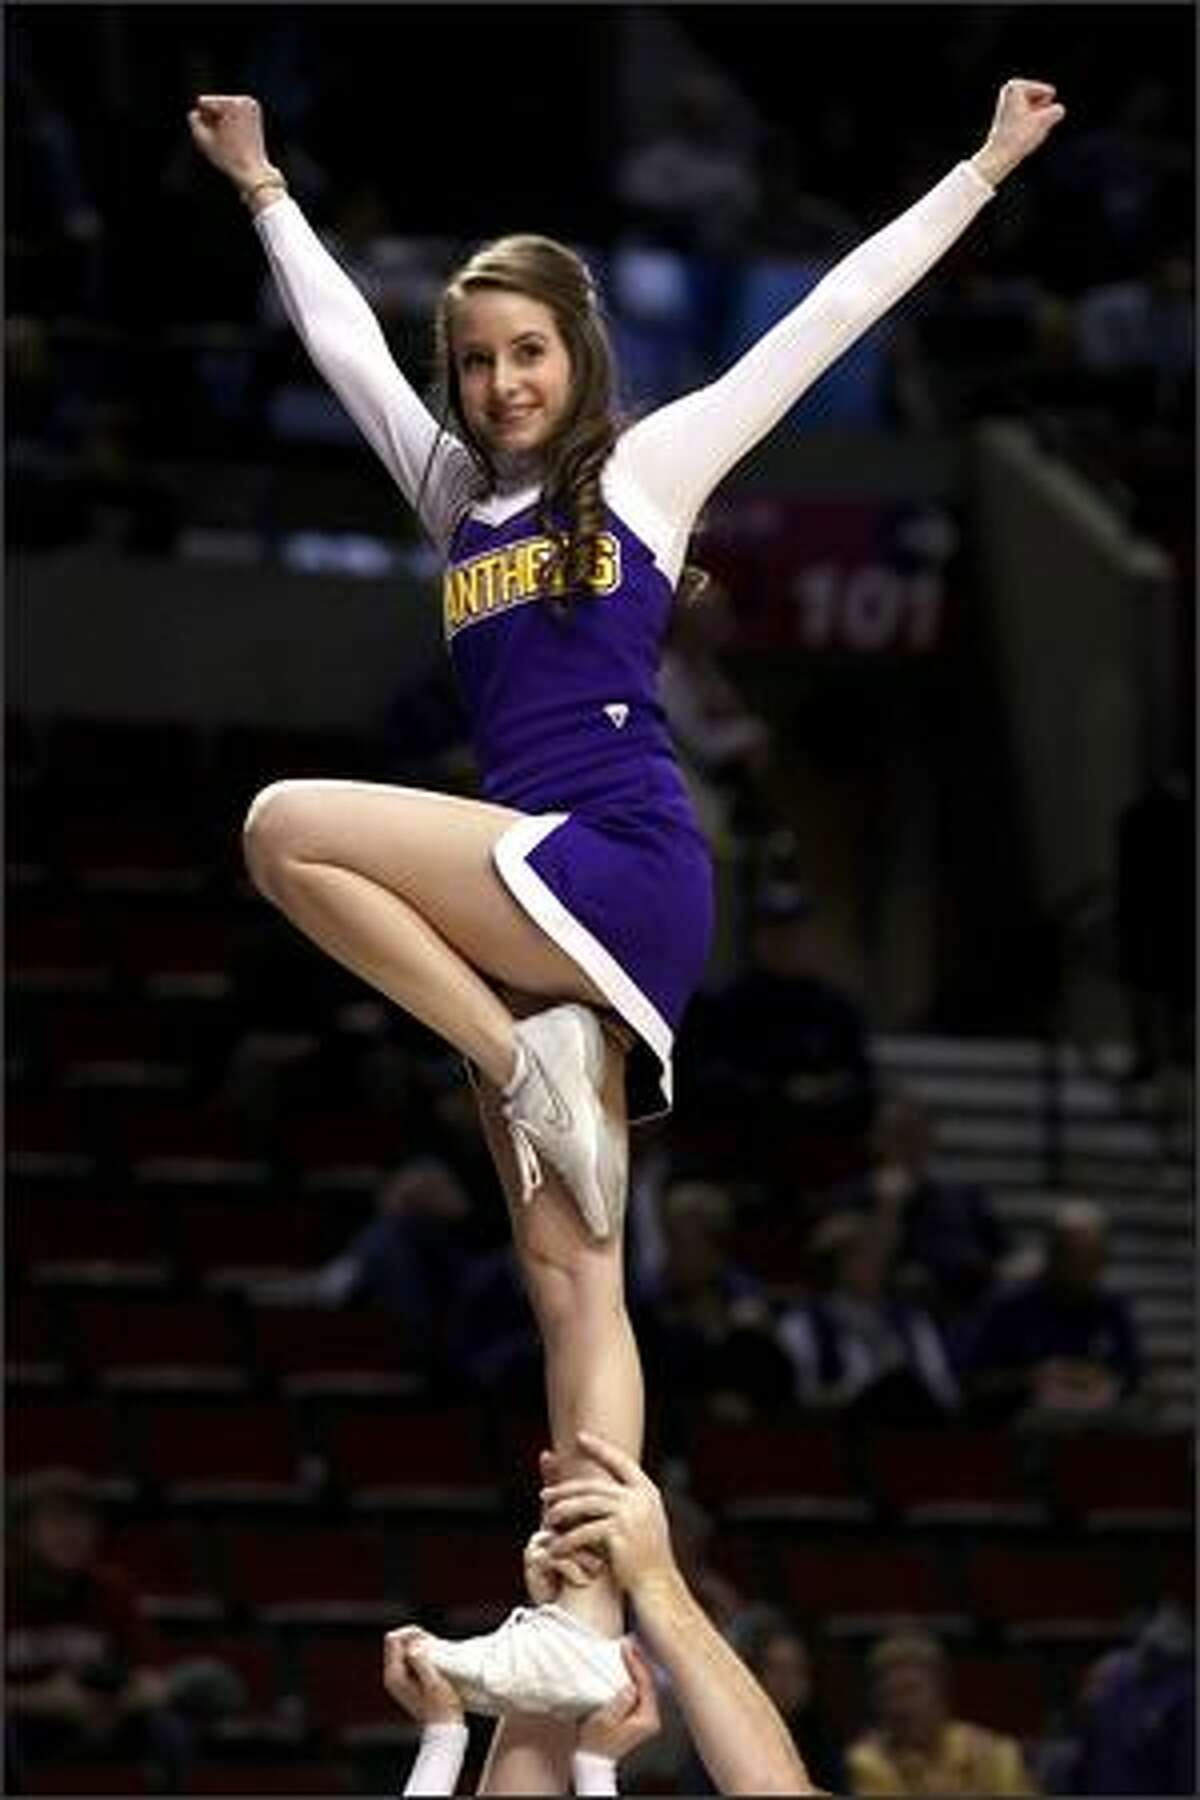 A member of the Northern Iowa Panthers cheerleading team performs during a break in the action while taking on the Purdue Boilermakers during the first round of the NCAA Division I men's basketball tournament at the Rose Garden in Portland, Ore., on March 19. All the photos in this gallery were taken from this year's tournament.